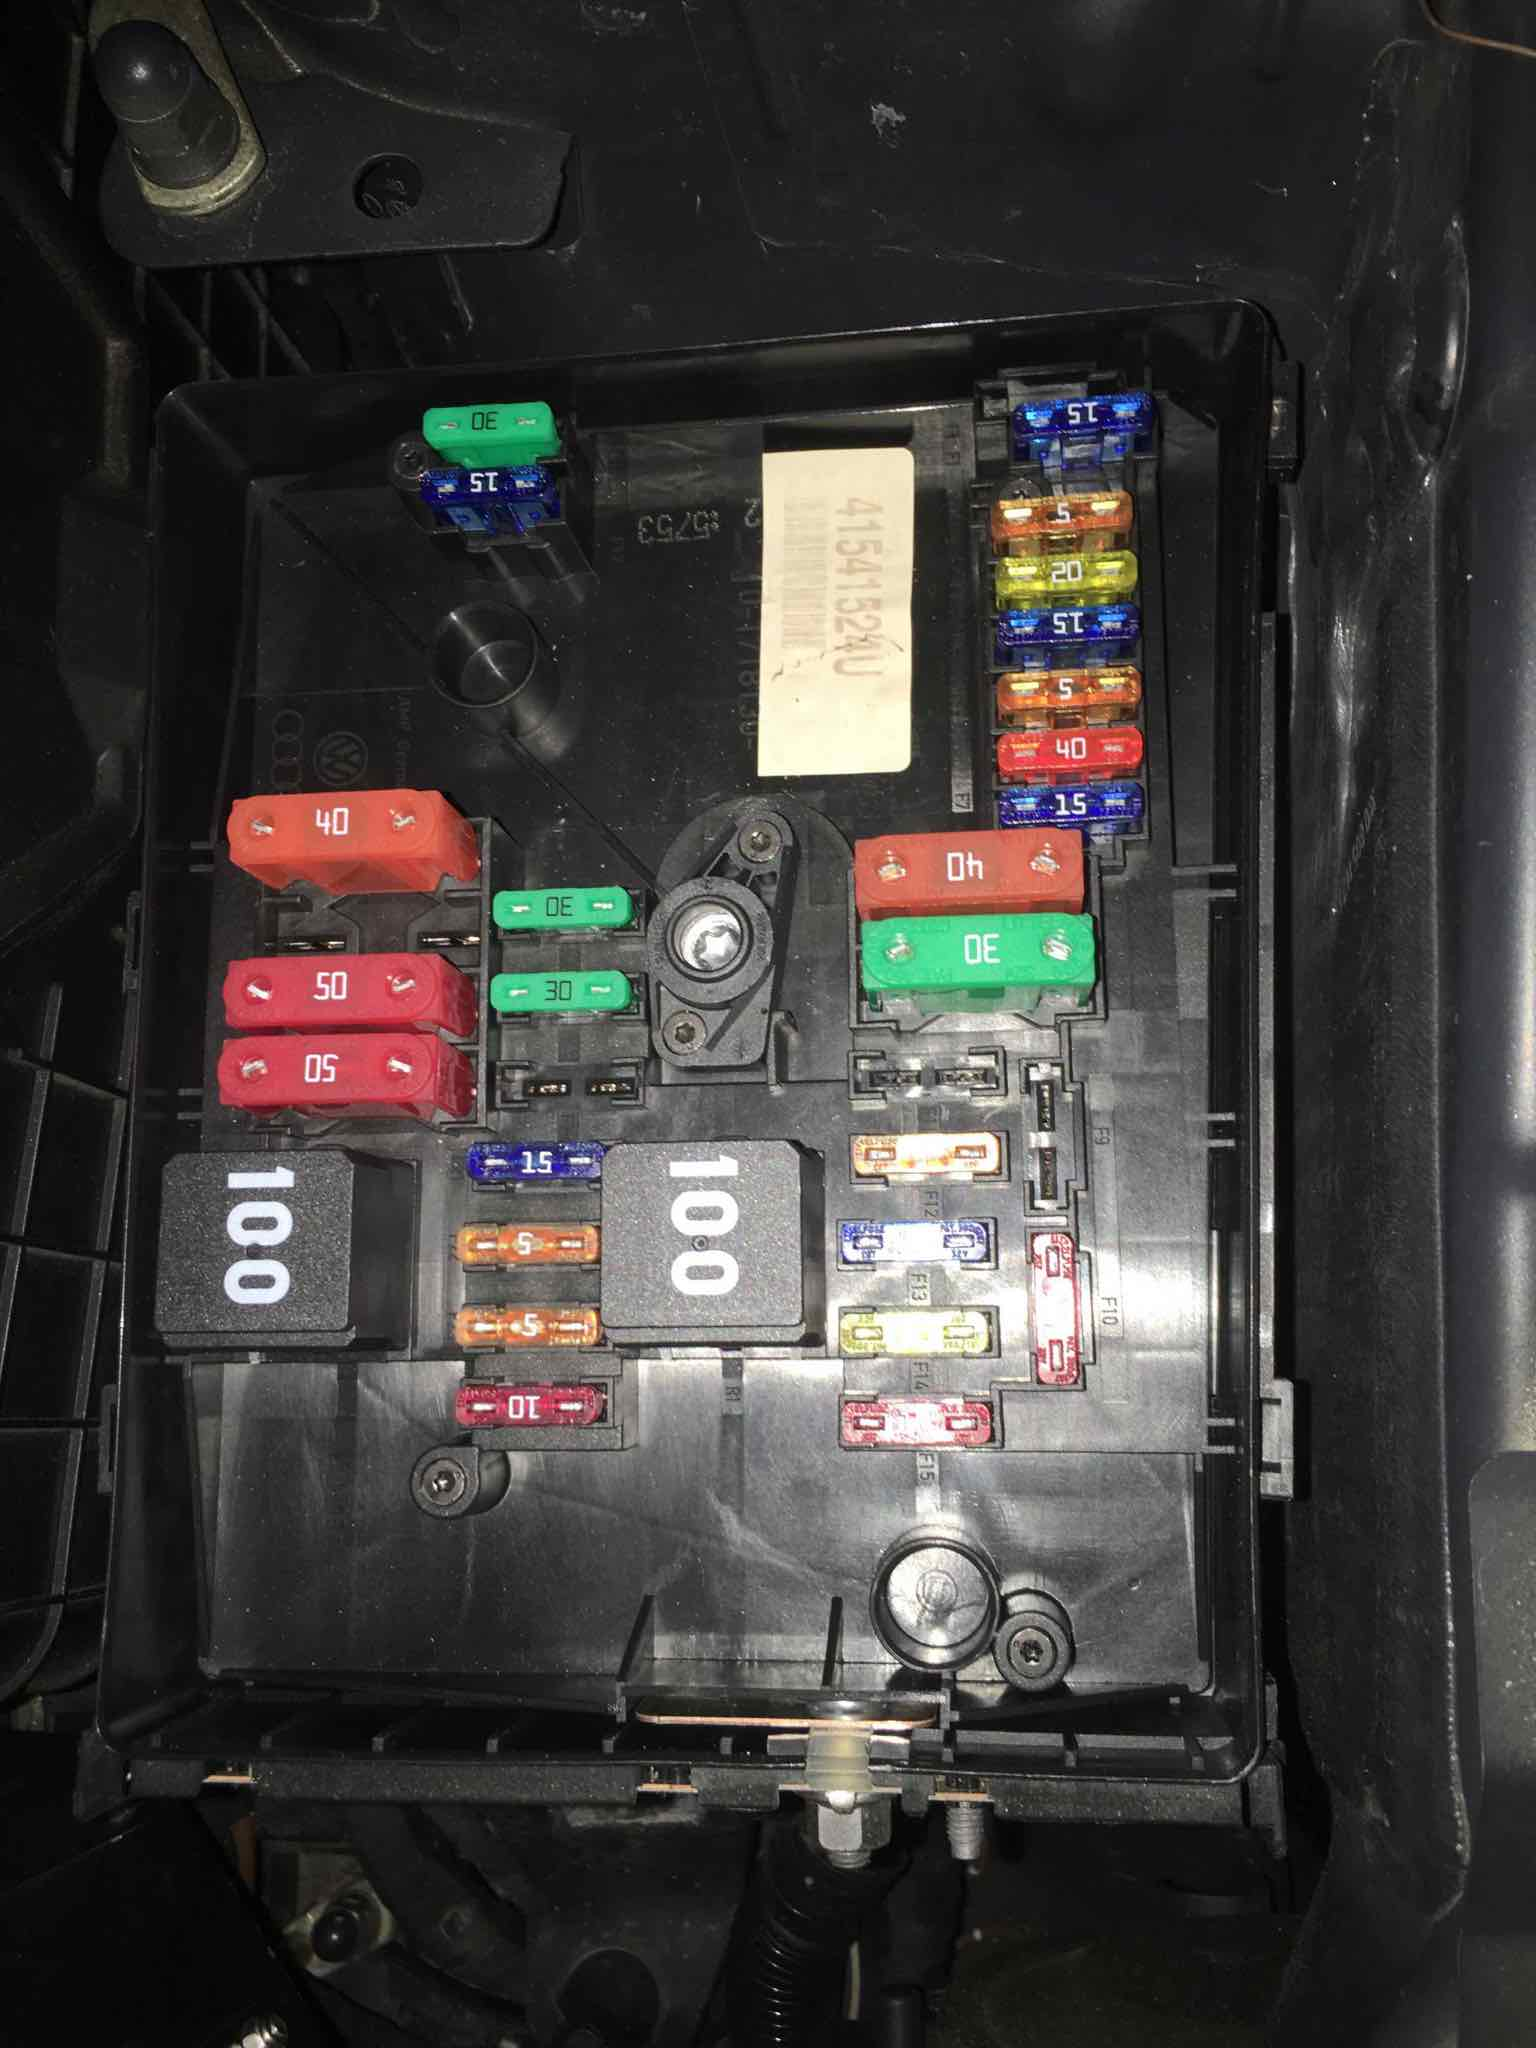 Fuse Box For Golf Mk4 Also 2012 Vw Golf Tdi Fuse Box Diagram As Well